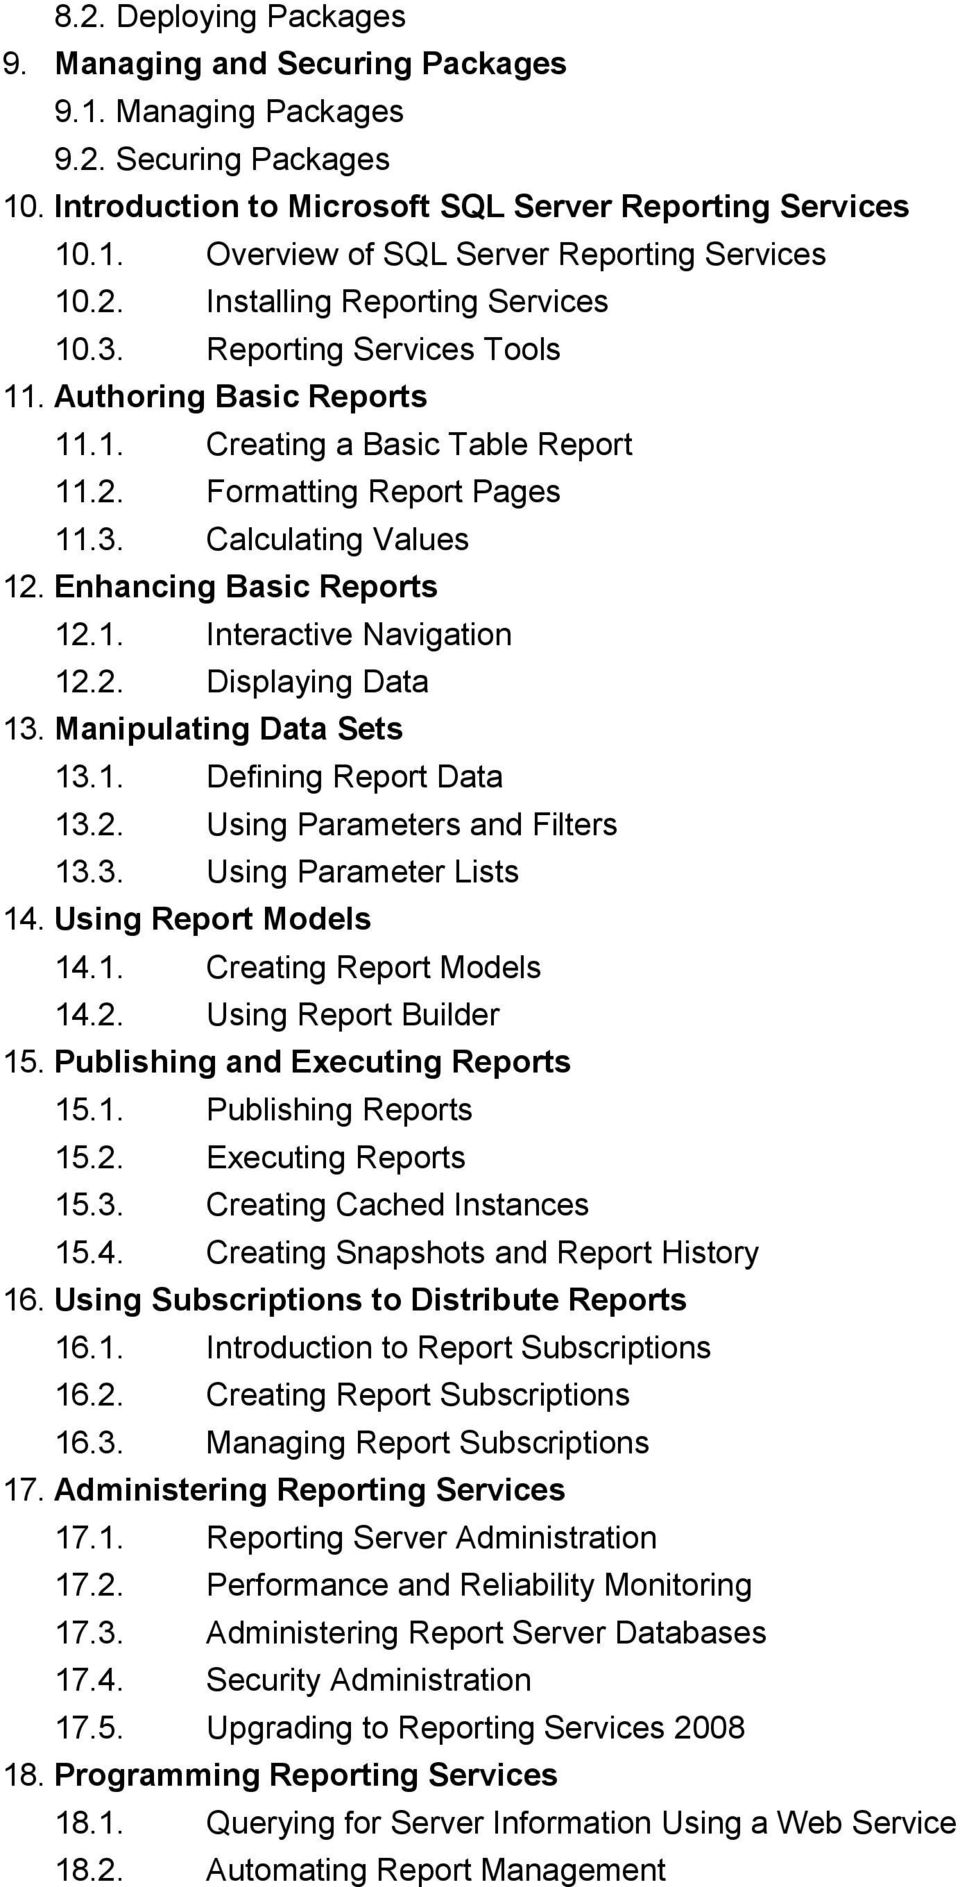 Enhancing Basic Reports 12.1. Interactive Navigation 12.2. Displaying Data 13. Manipulating Data Sets 13.1. Defining Report Data 13.2. Using Parameters and Filters 13.3. Using Parameter Lists 14.